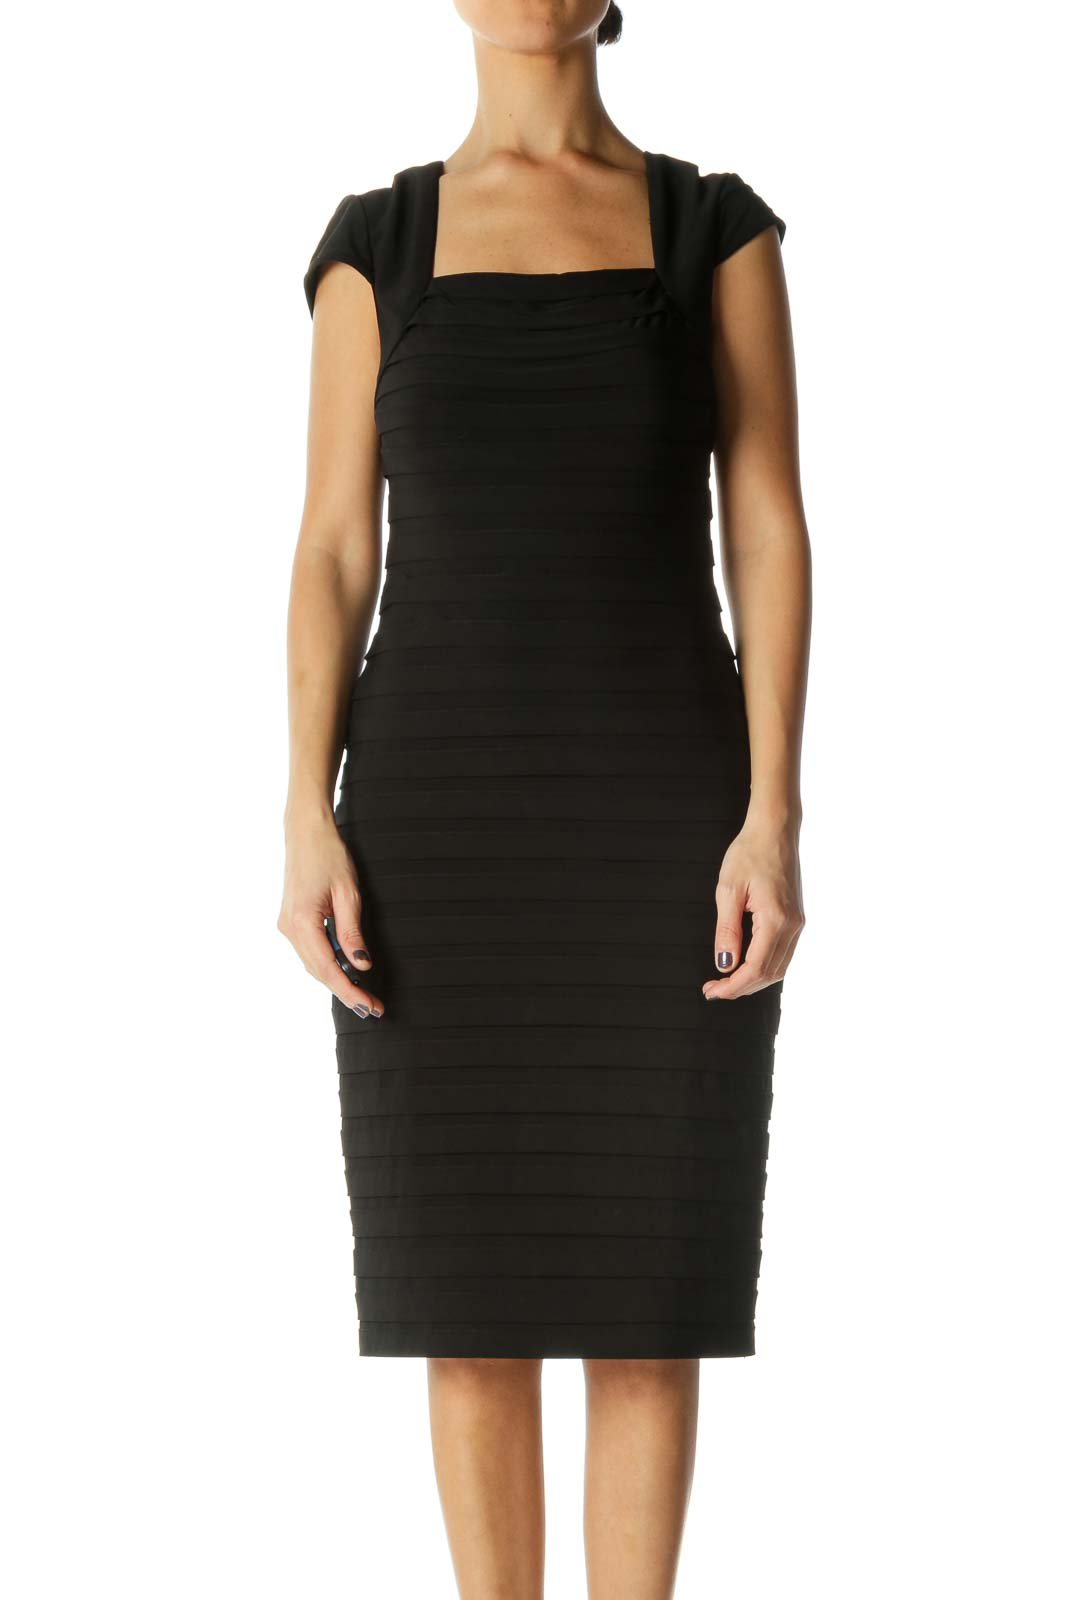 Black Solid Square Neck Sheath Dress